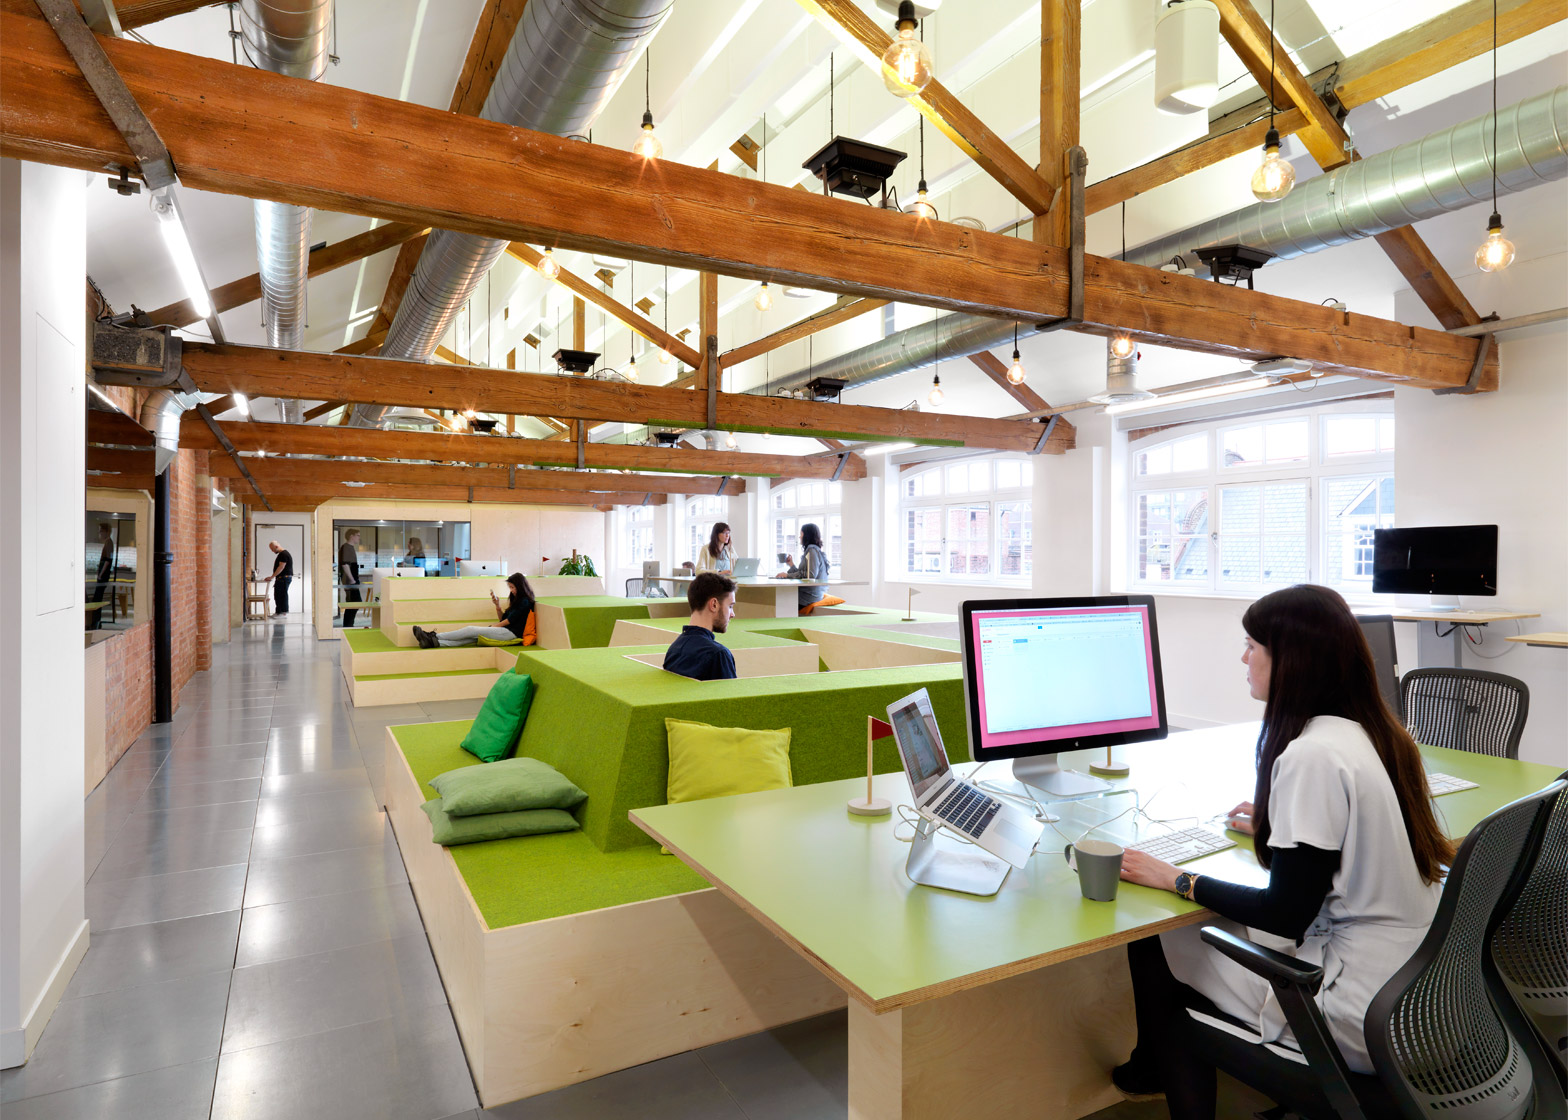 AirBnB's London office features in this piece about a What Workers Want survey in the UK